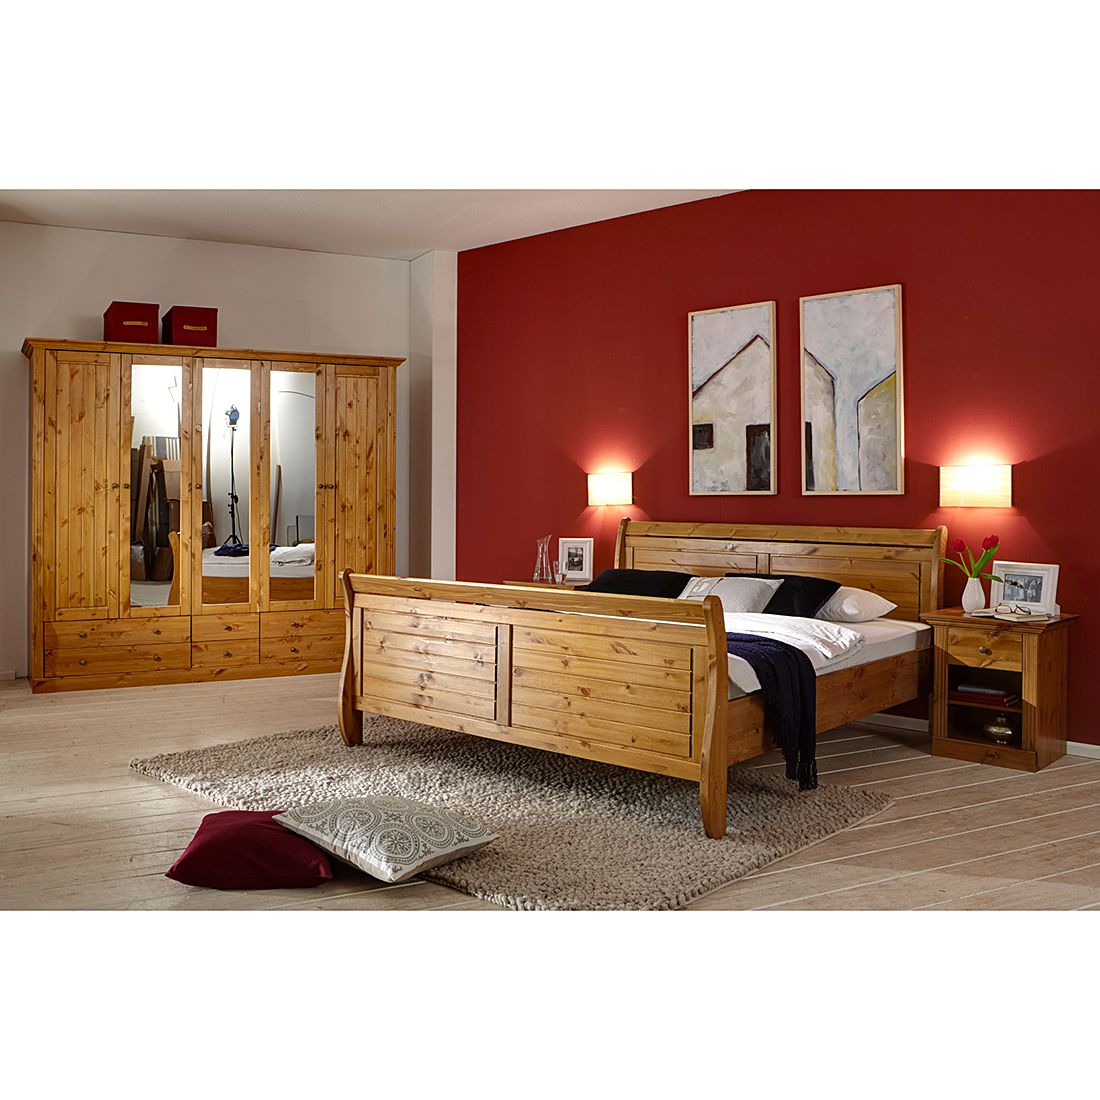 schlafzimmer set lyngby 4 teilig kiefer massiv. Black Bedroom Furniture Sets. Home Design Ideas